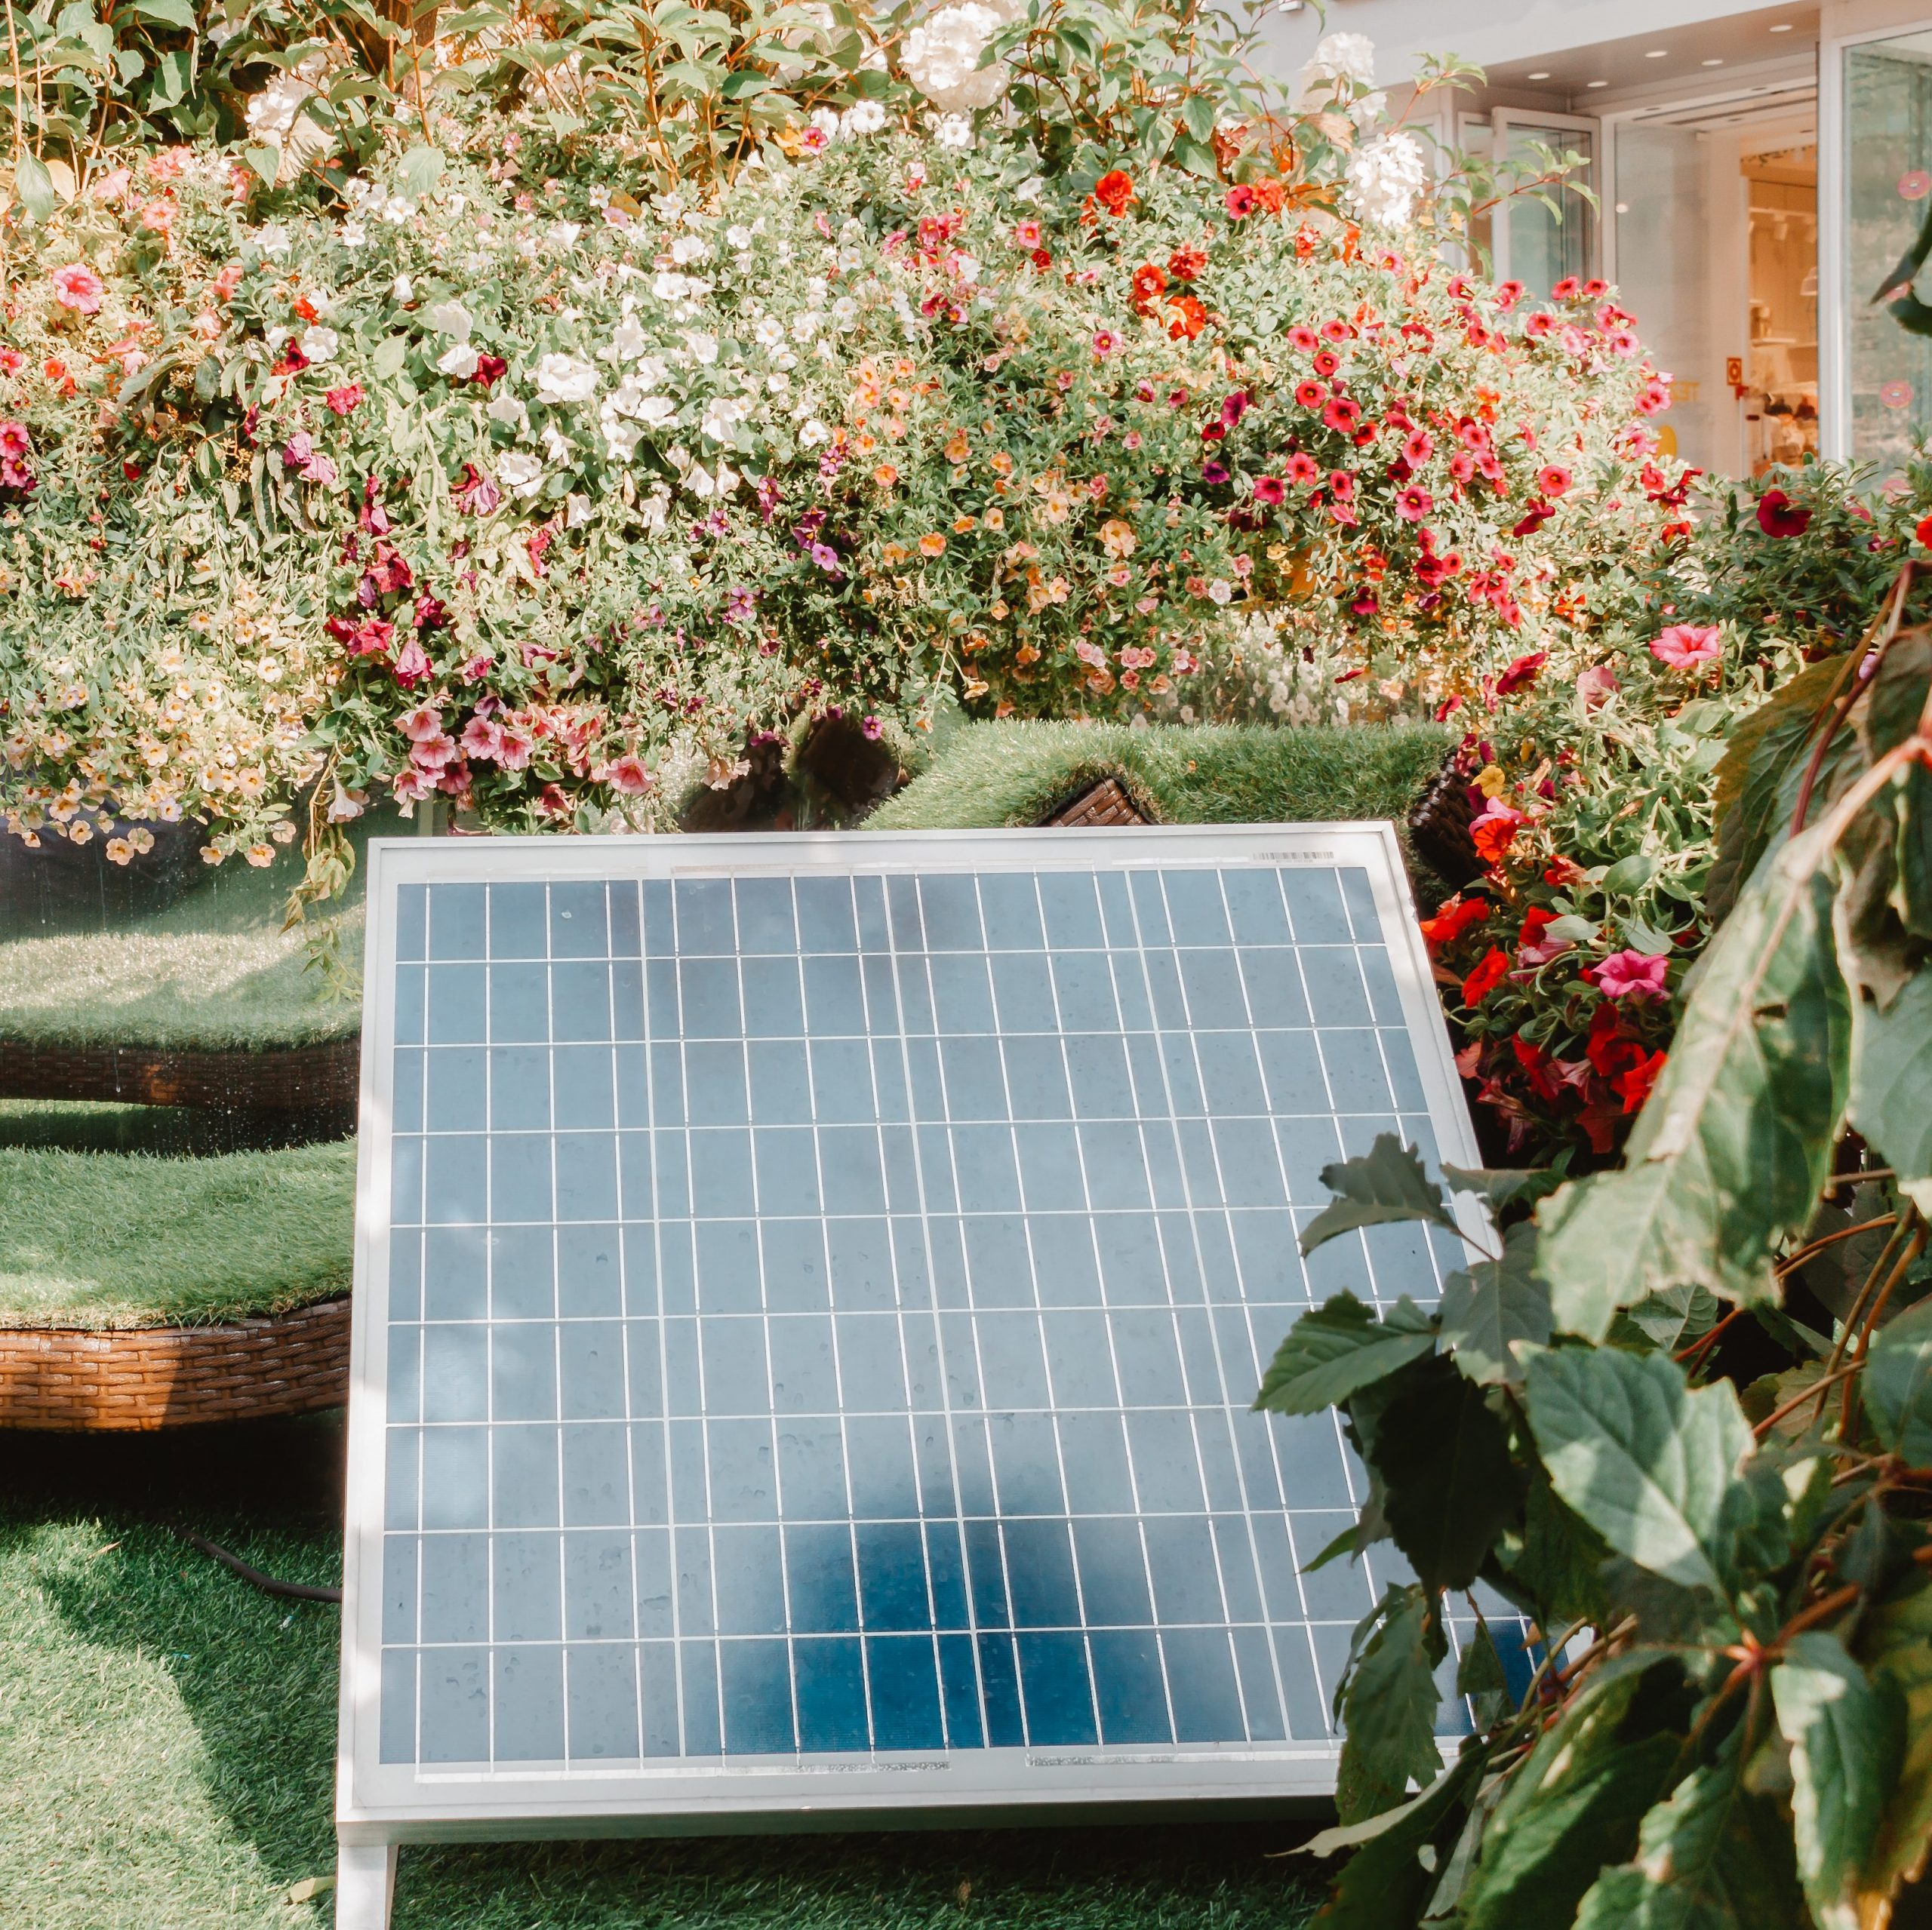 Solar cell in back or front house yard with trees and flowers warm sunny spring or summer day.